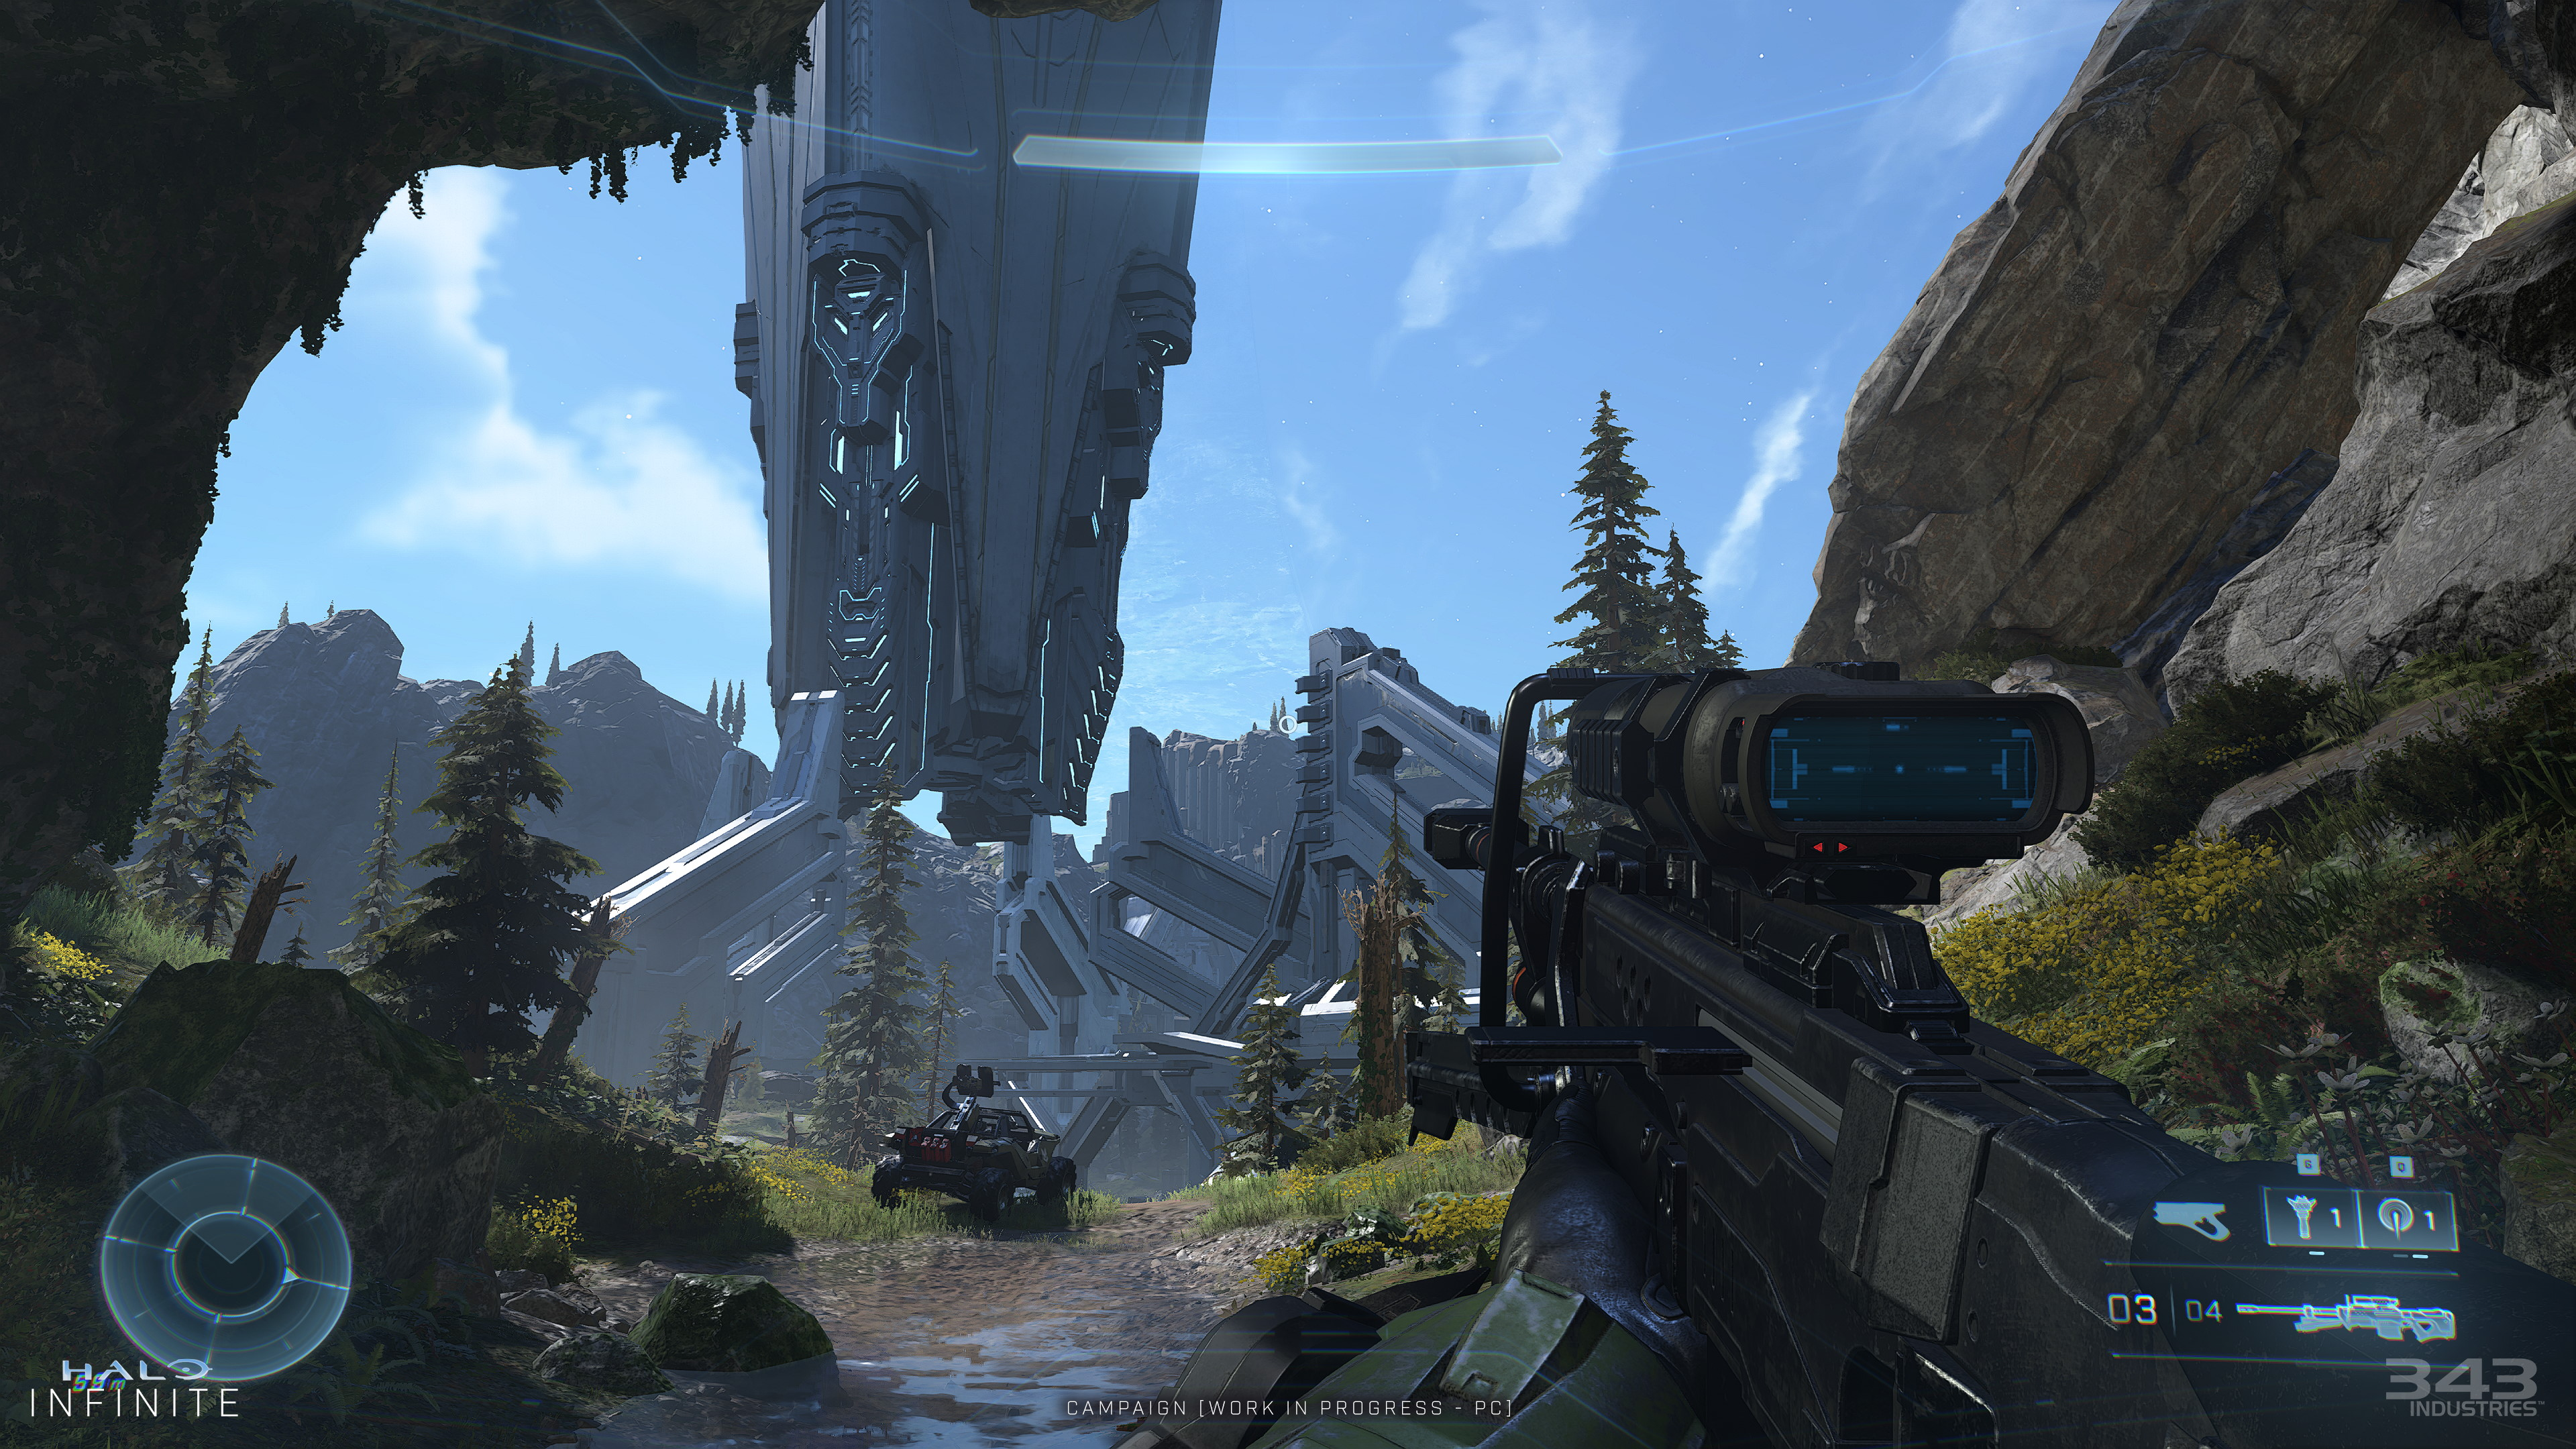 343 Industries explains how Halo Infinite is a 'spiritual reboot' that will evoke the legacy of the original